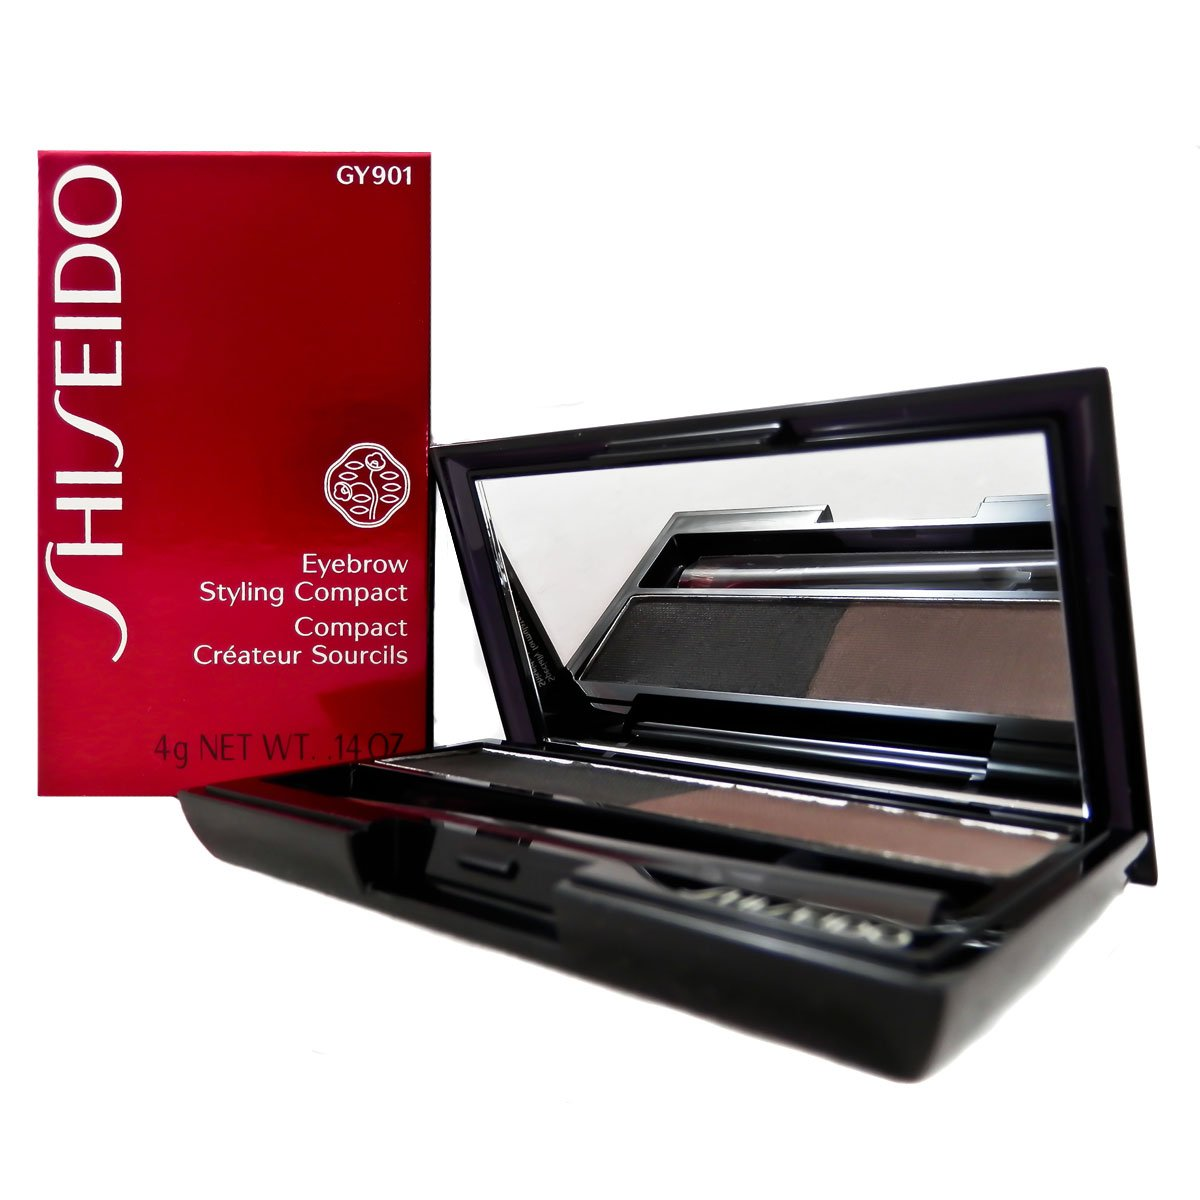 Shiseido Eyebrow Styling Compact for Women, No. GY901 Deep Brown, 0.14 oz by Shiseido